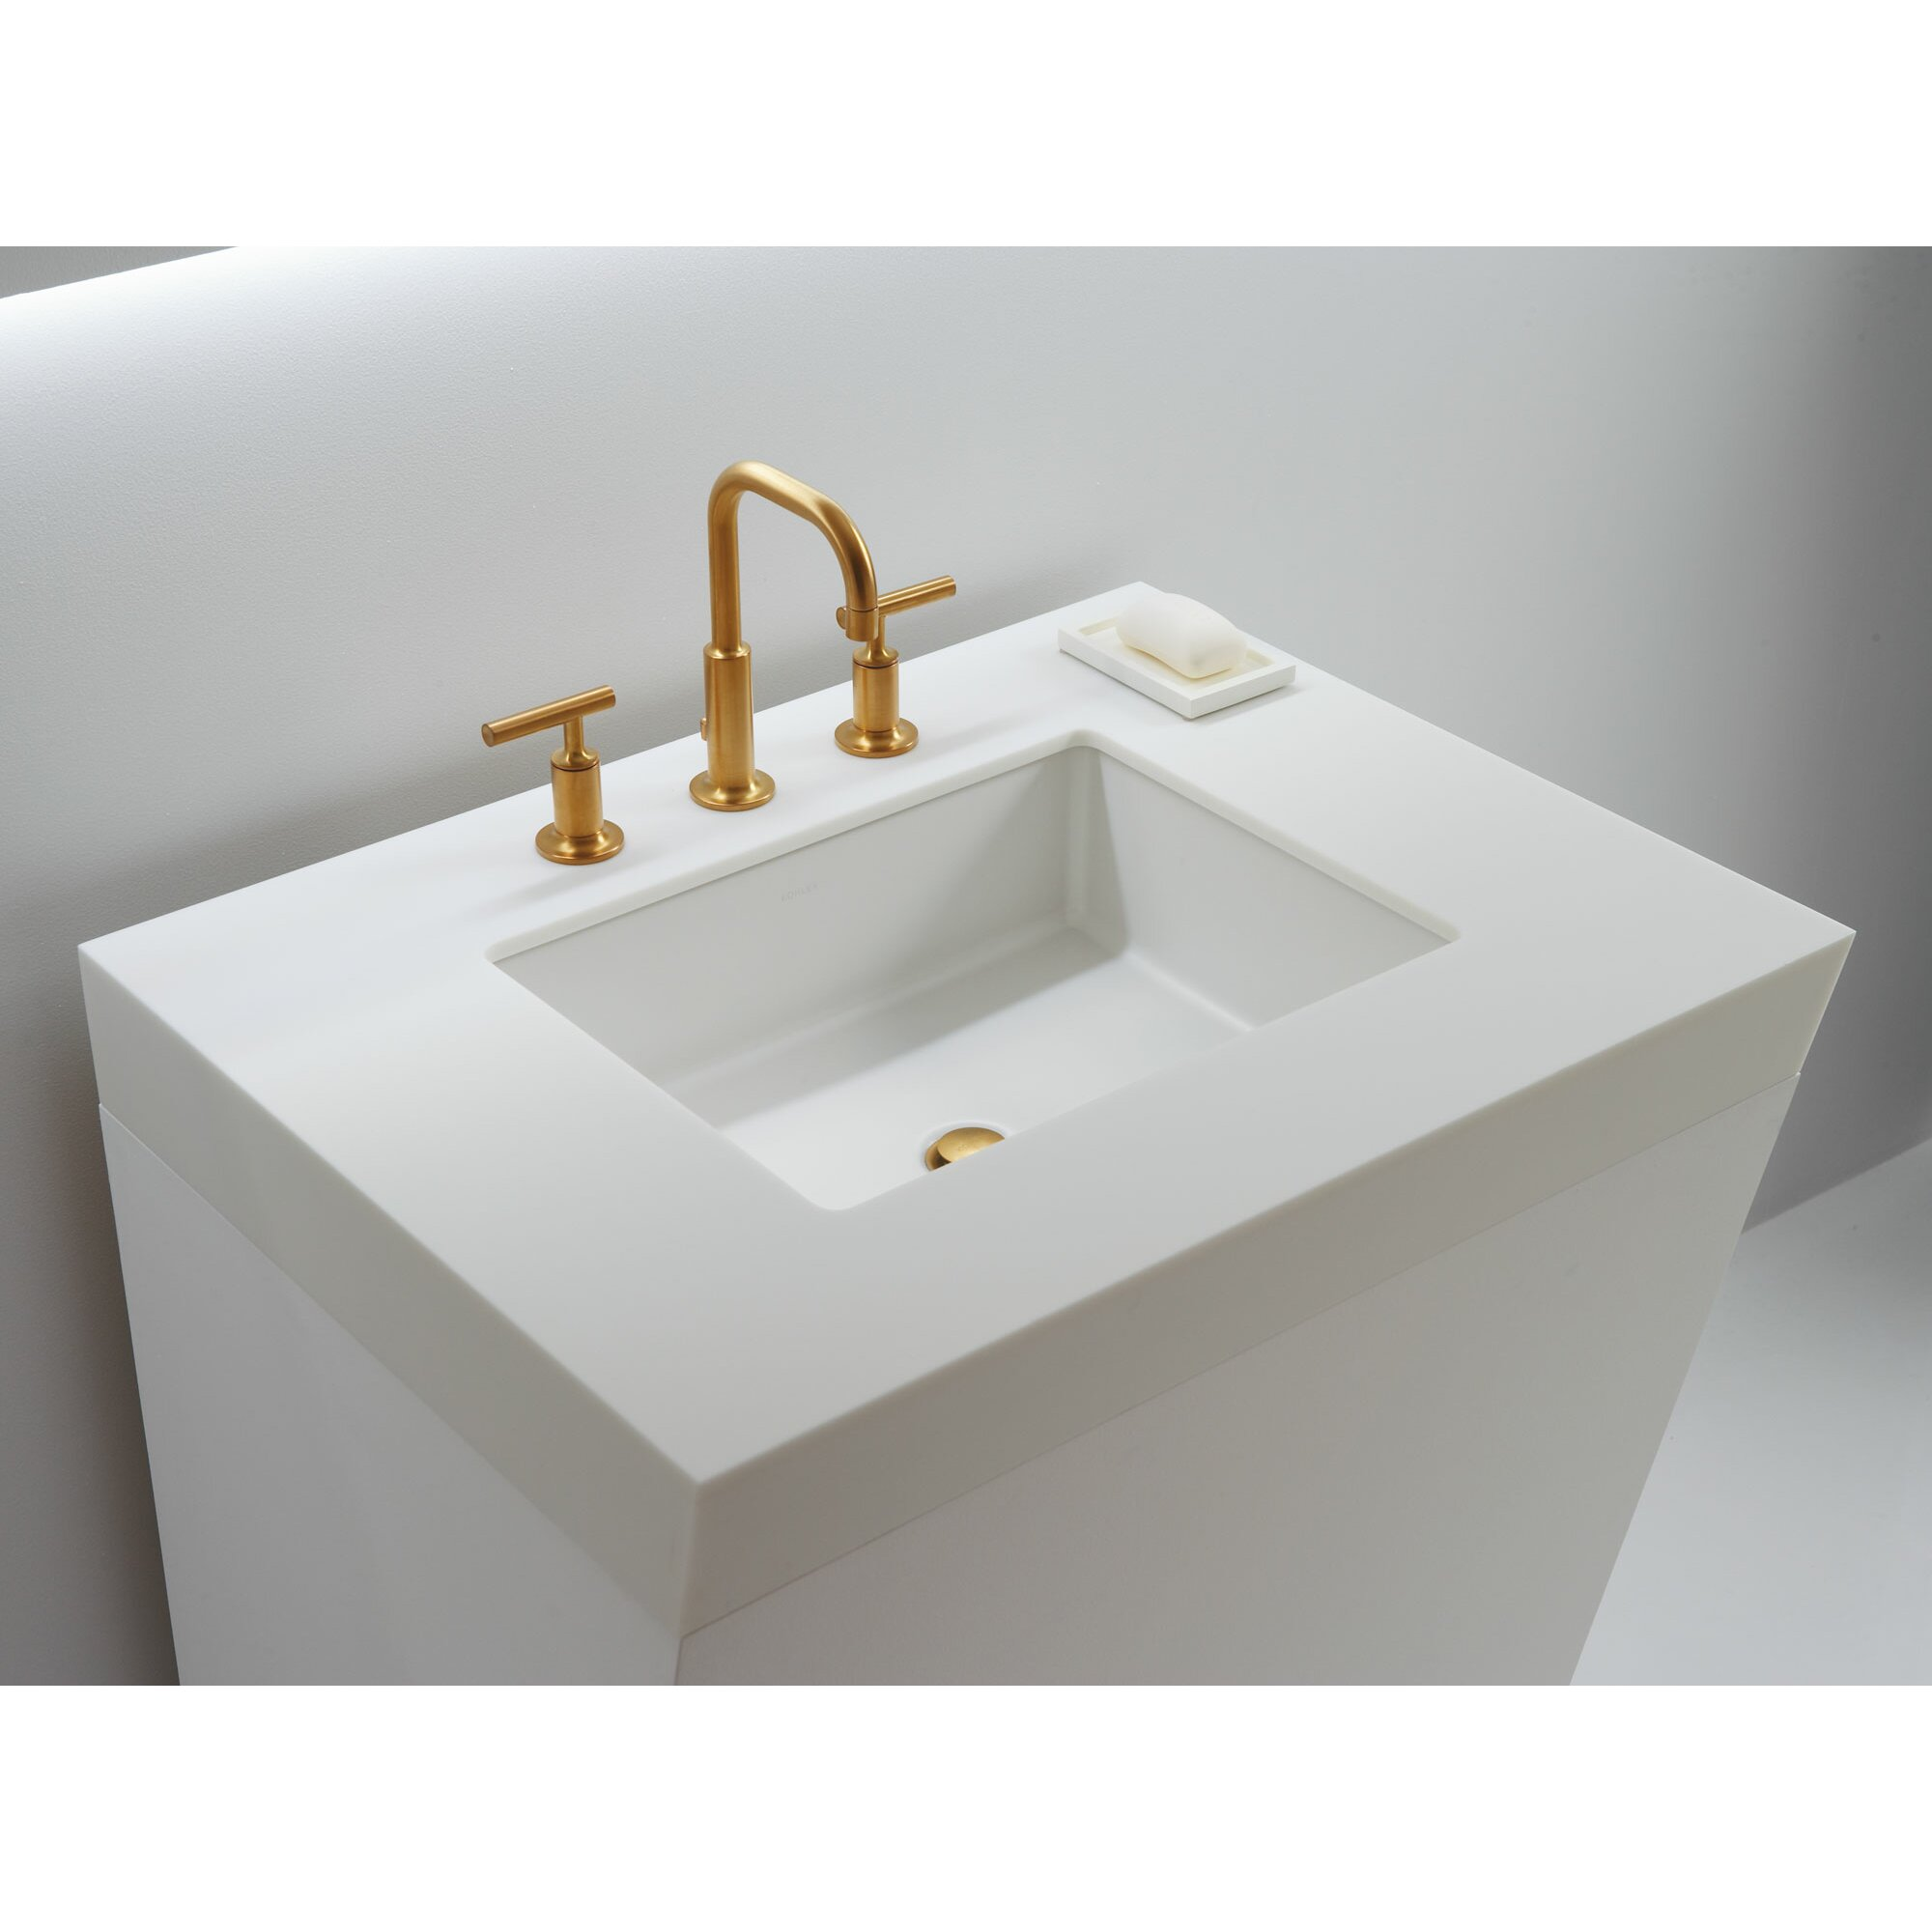 Kohler verticyl rectangular undermount bathroom sink with - How to install an undermount bathroom sink ...